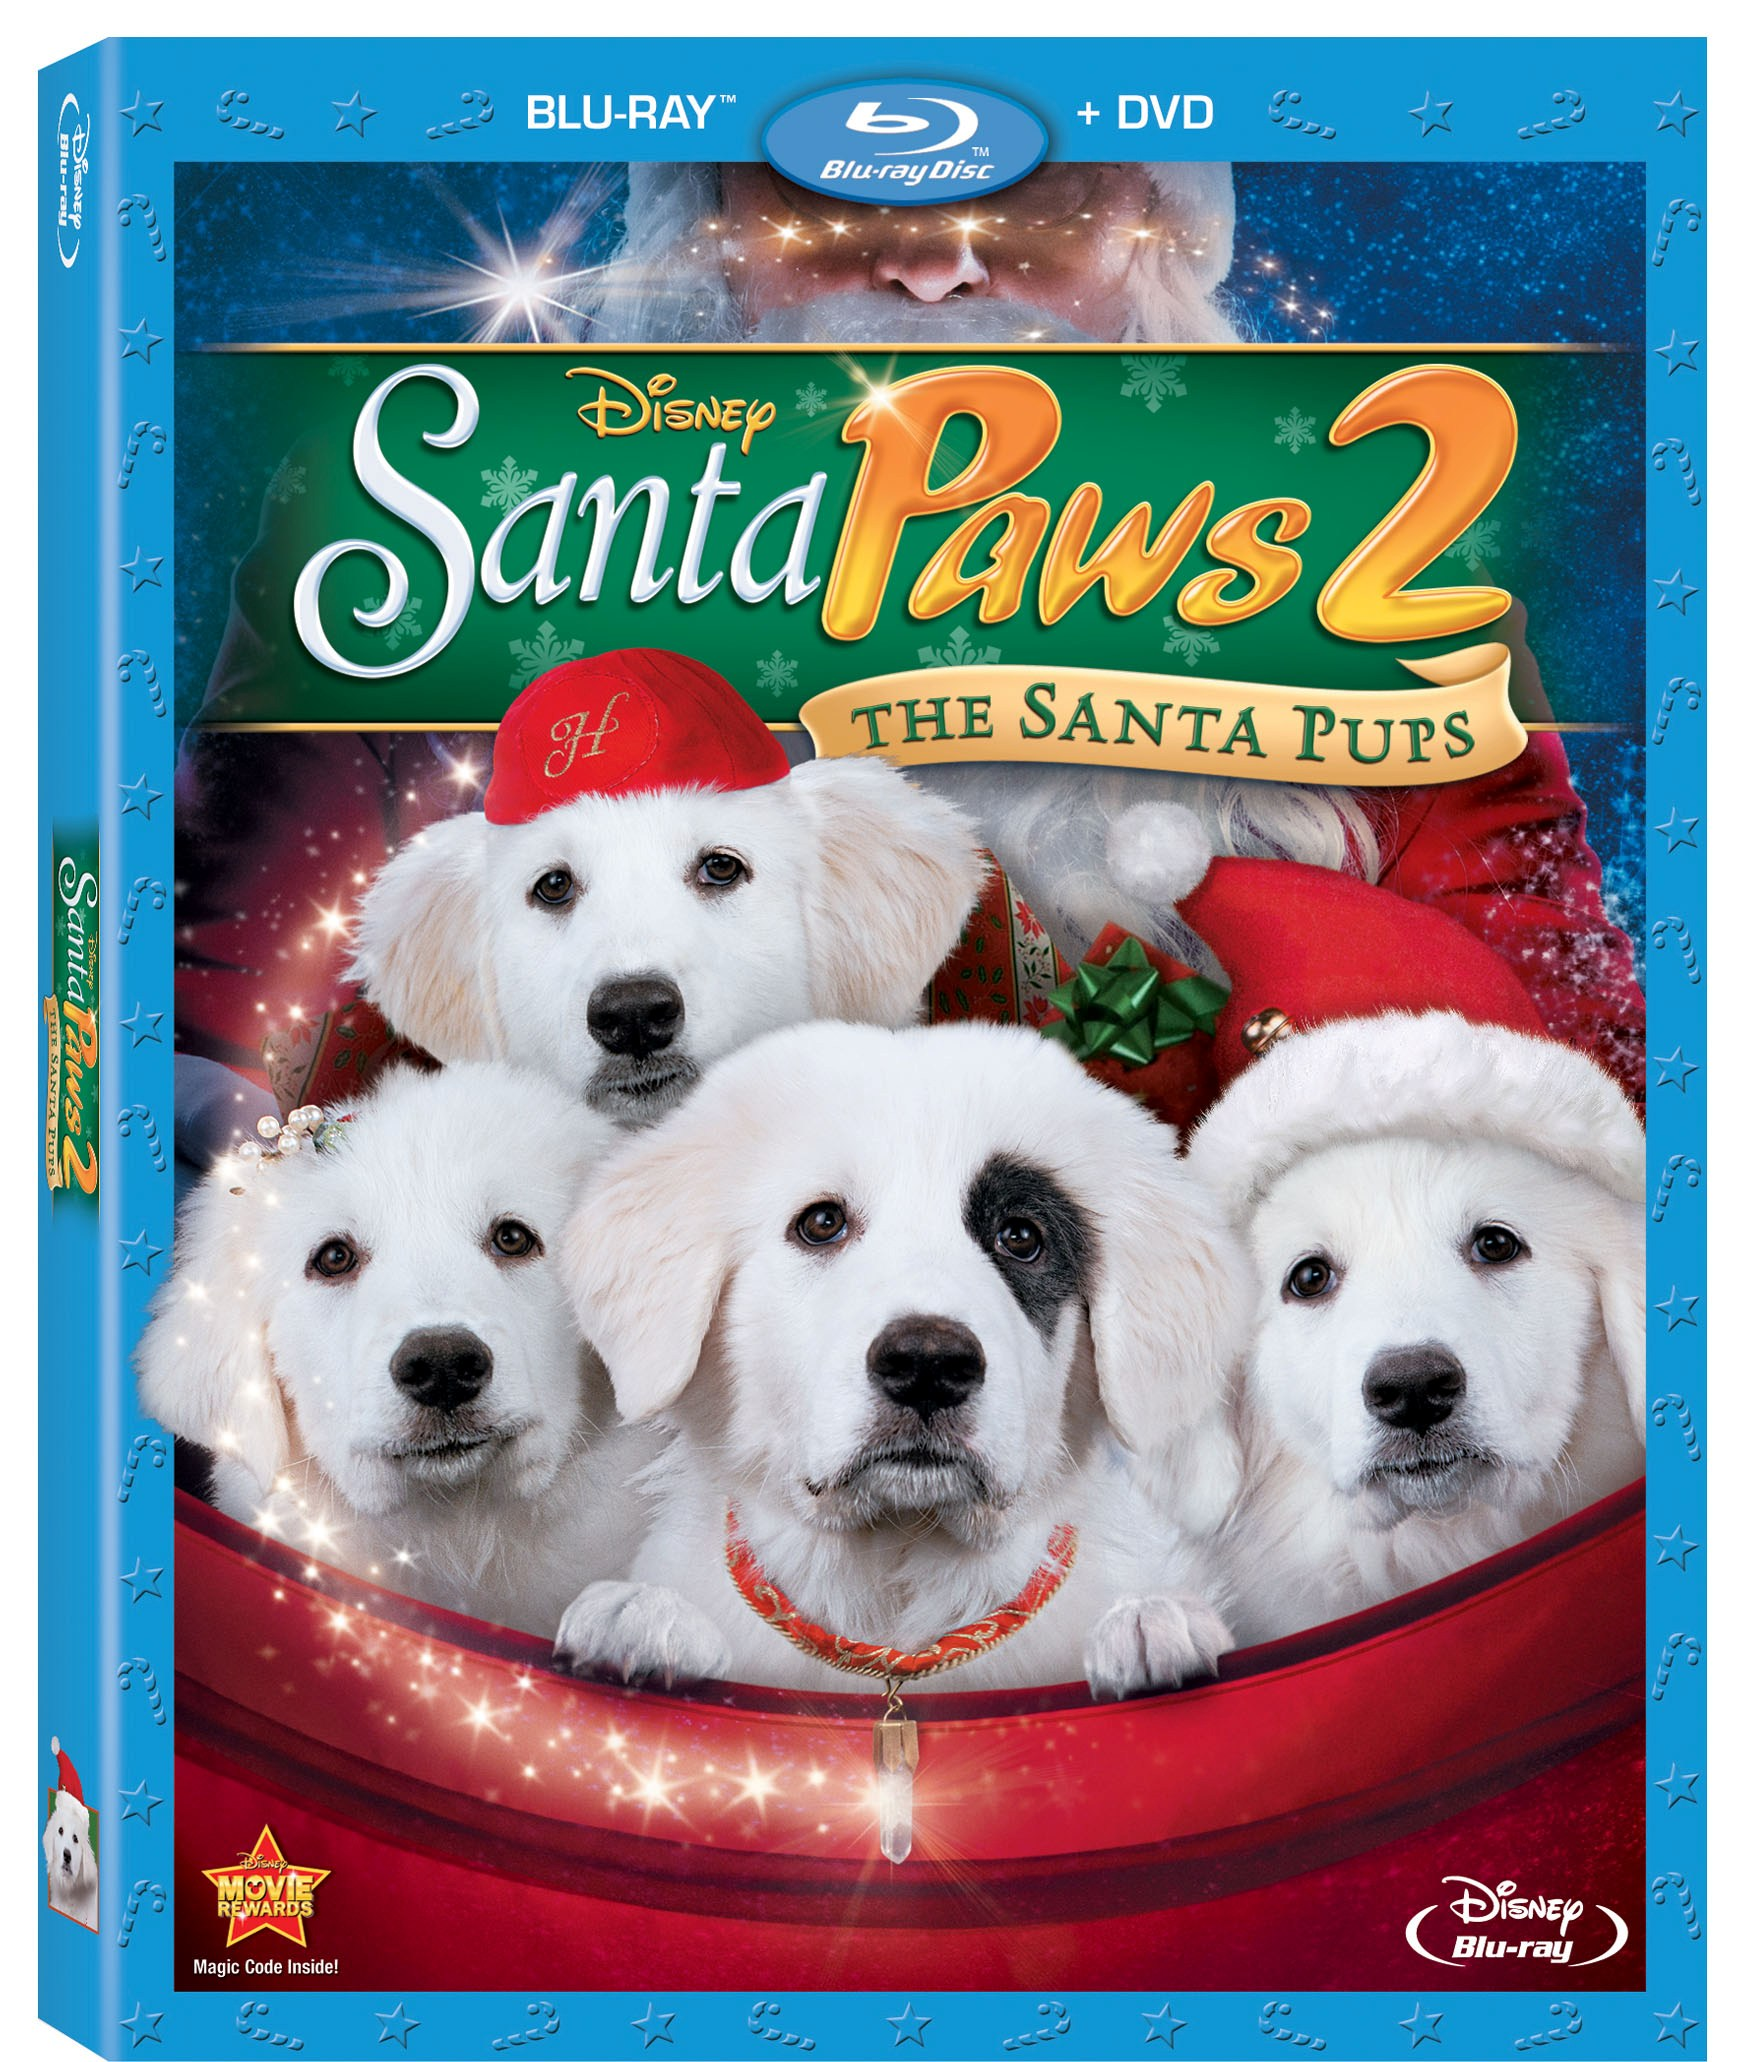 Mrs Claus Santa Paws 2